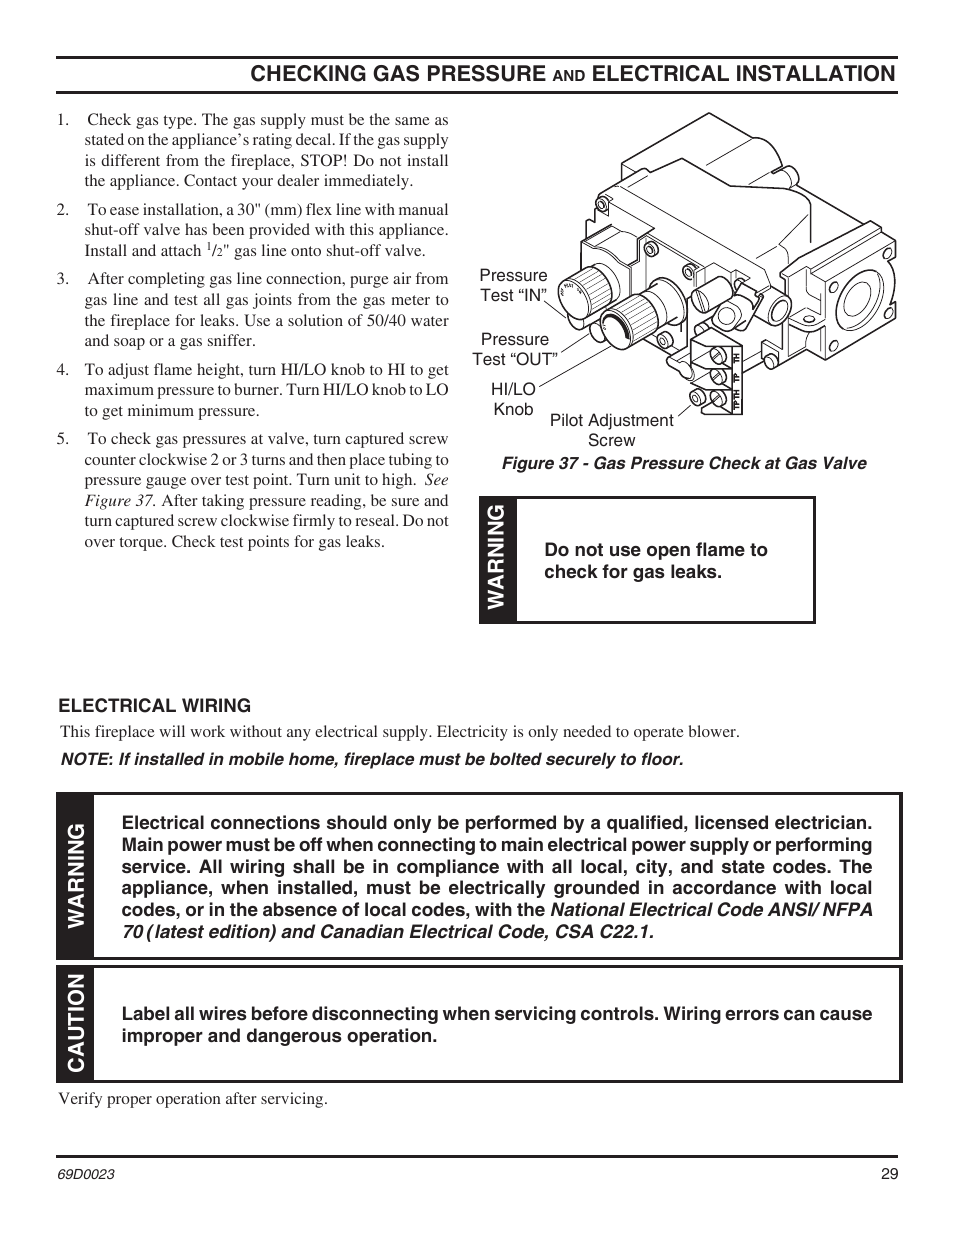 checking gas pres sure, electrical installation, warning | monessen hearth  direct vent gas fireplace cdvr36 user manual | page 29 / 52